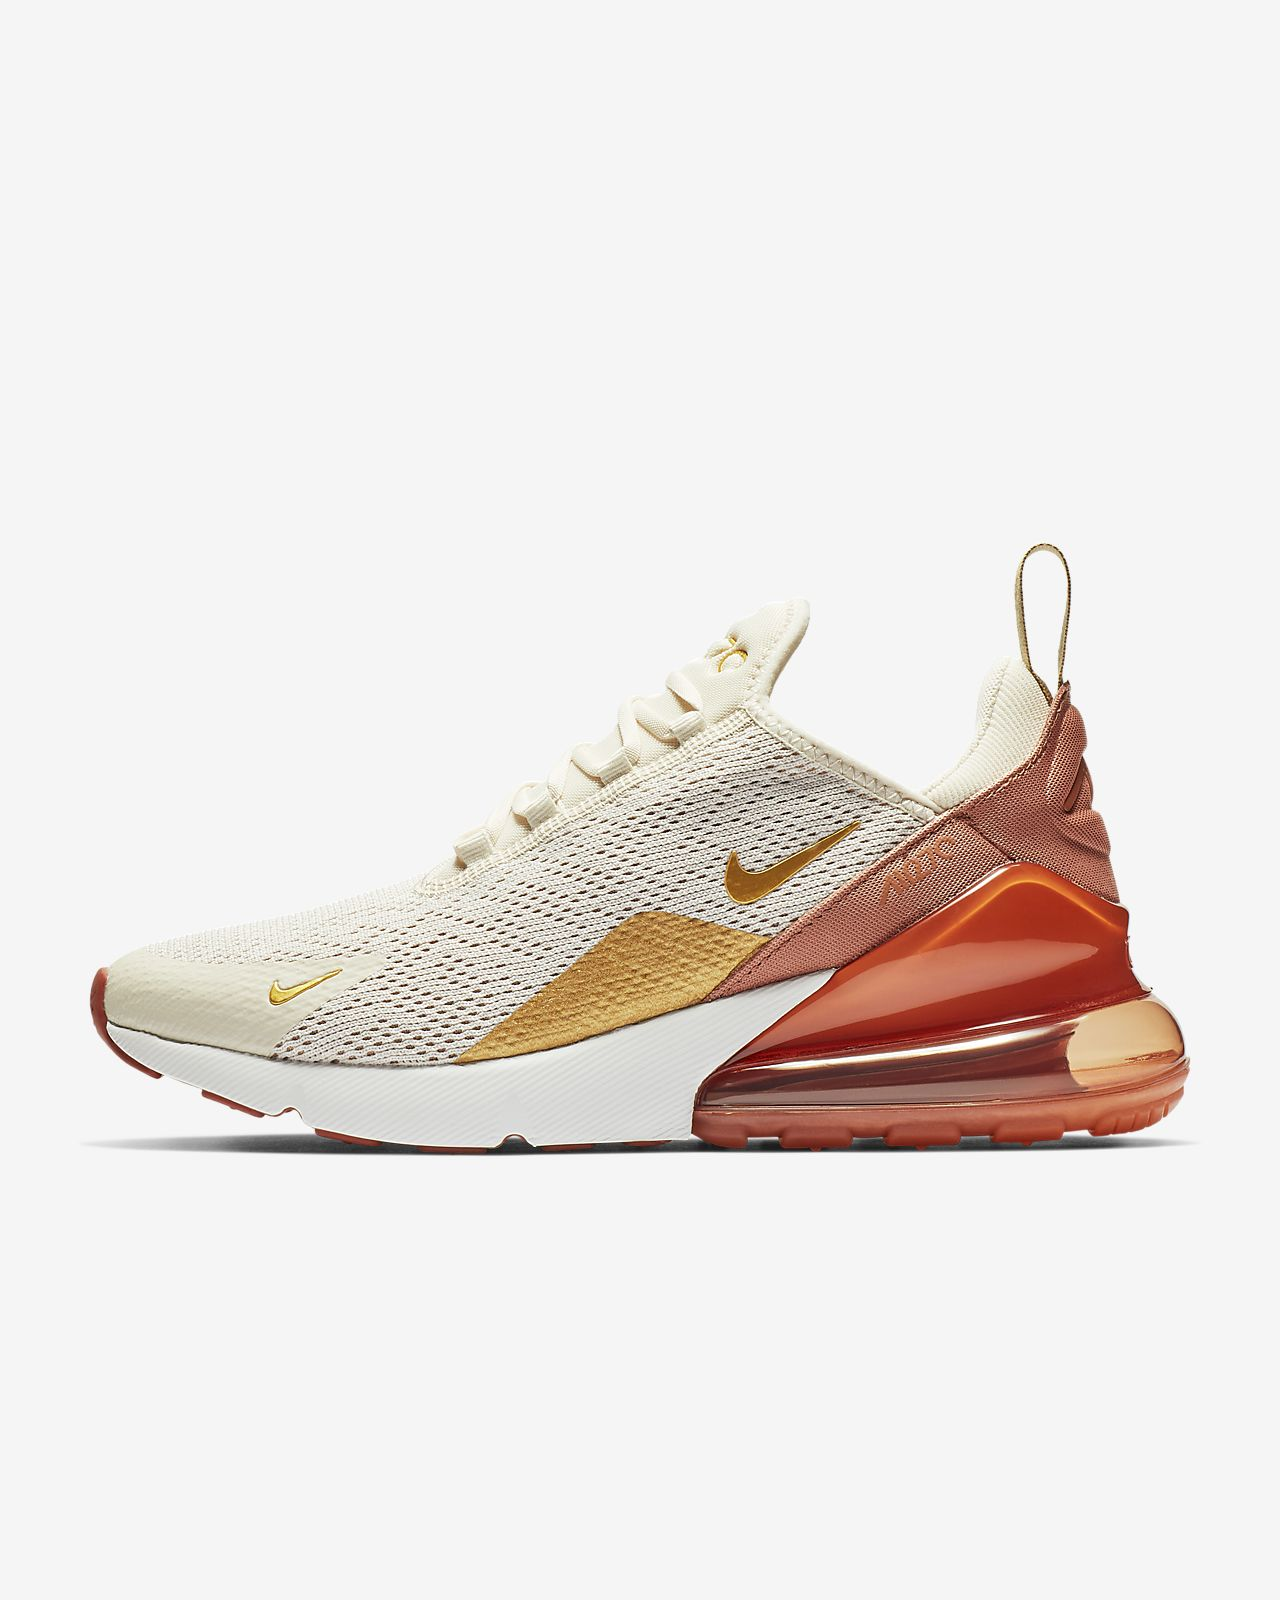 06841acef33d9 Nike Air Max 270 Women s Shoe. Nike.com